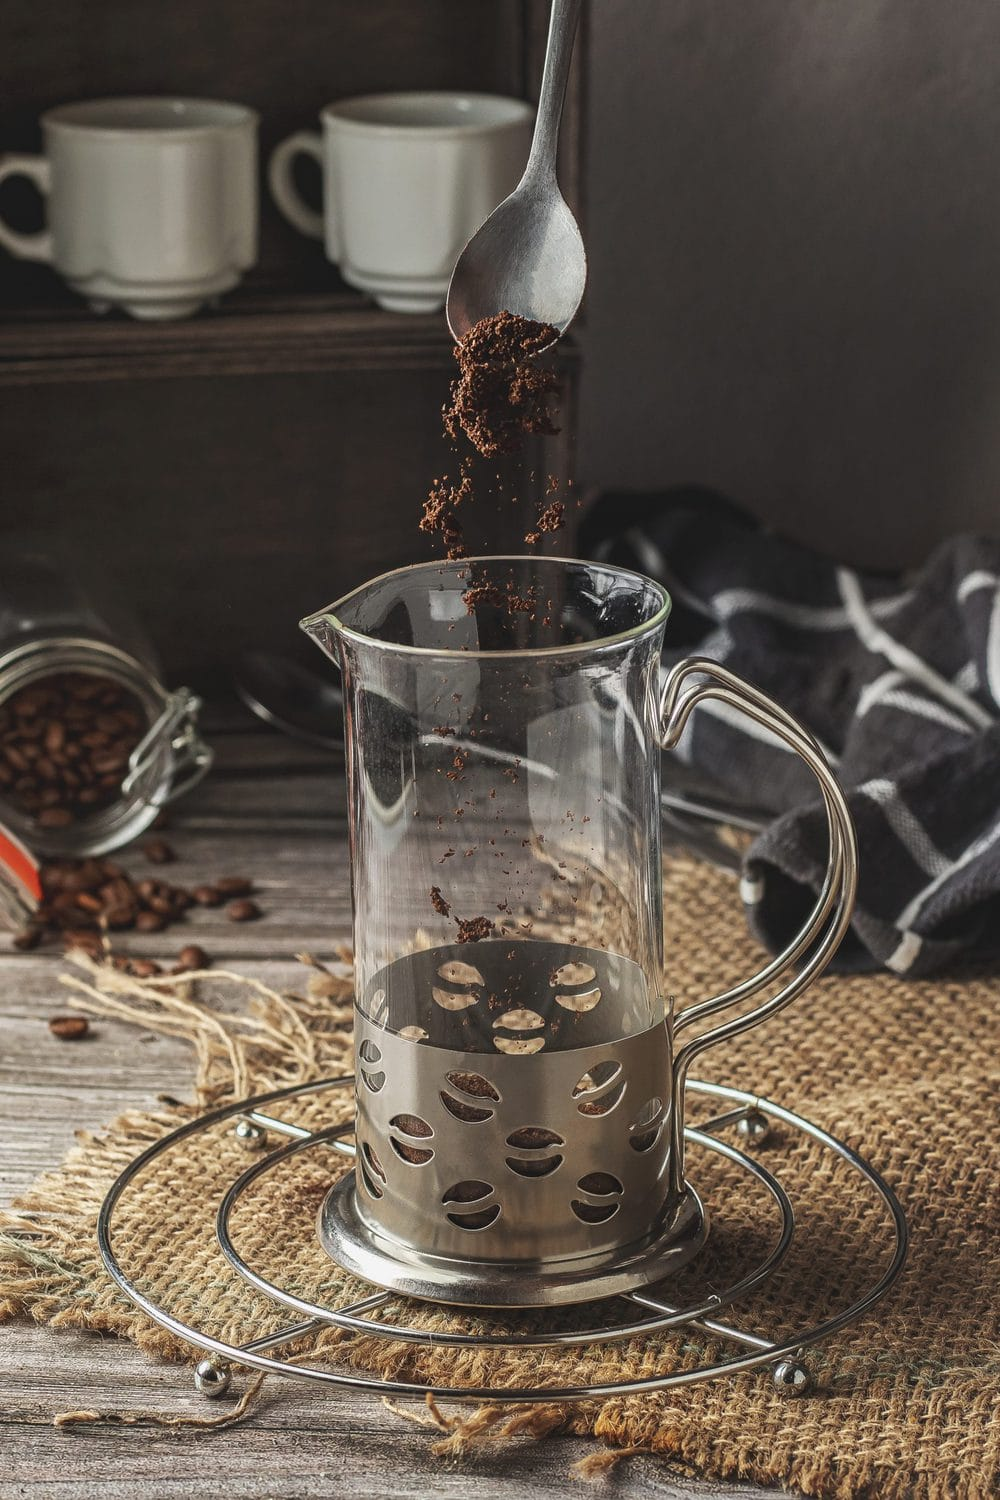 Adding ground coffee into the French press